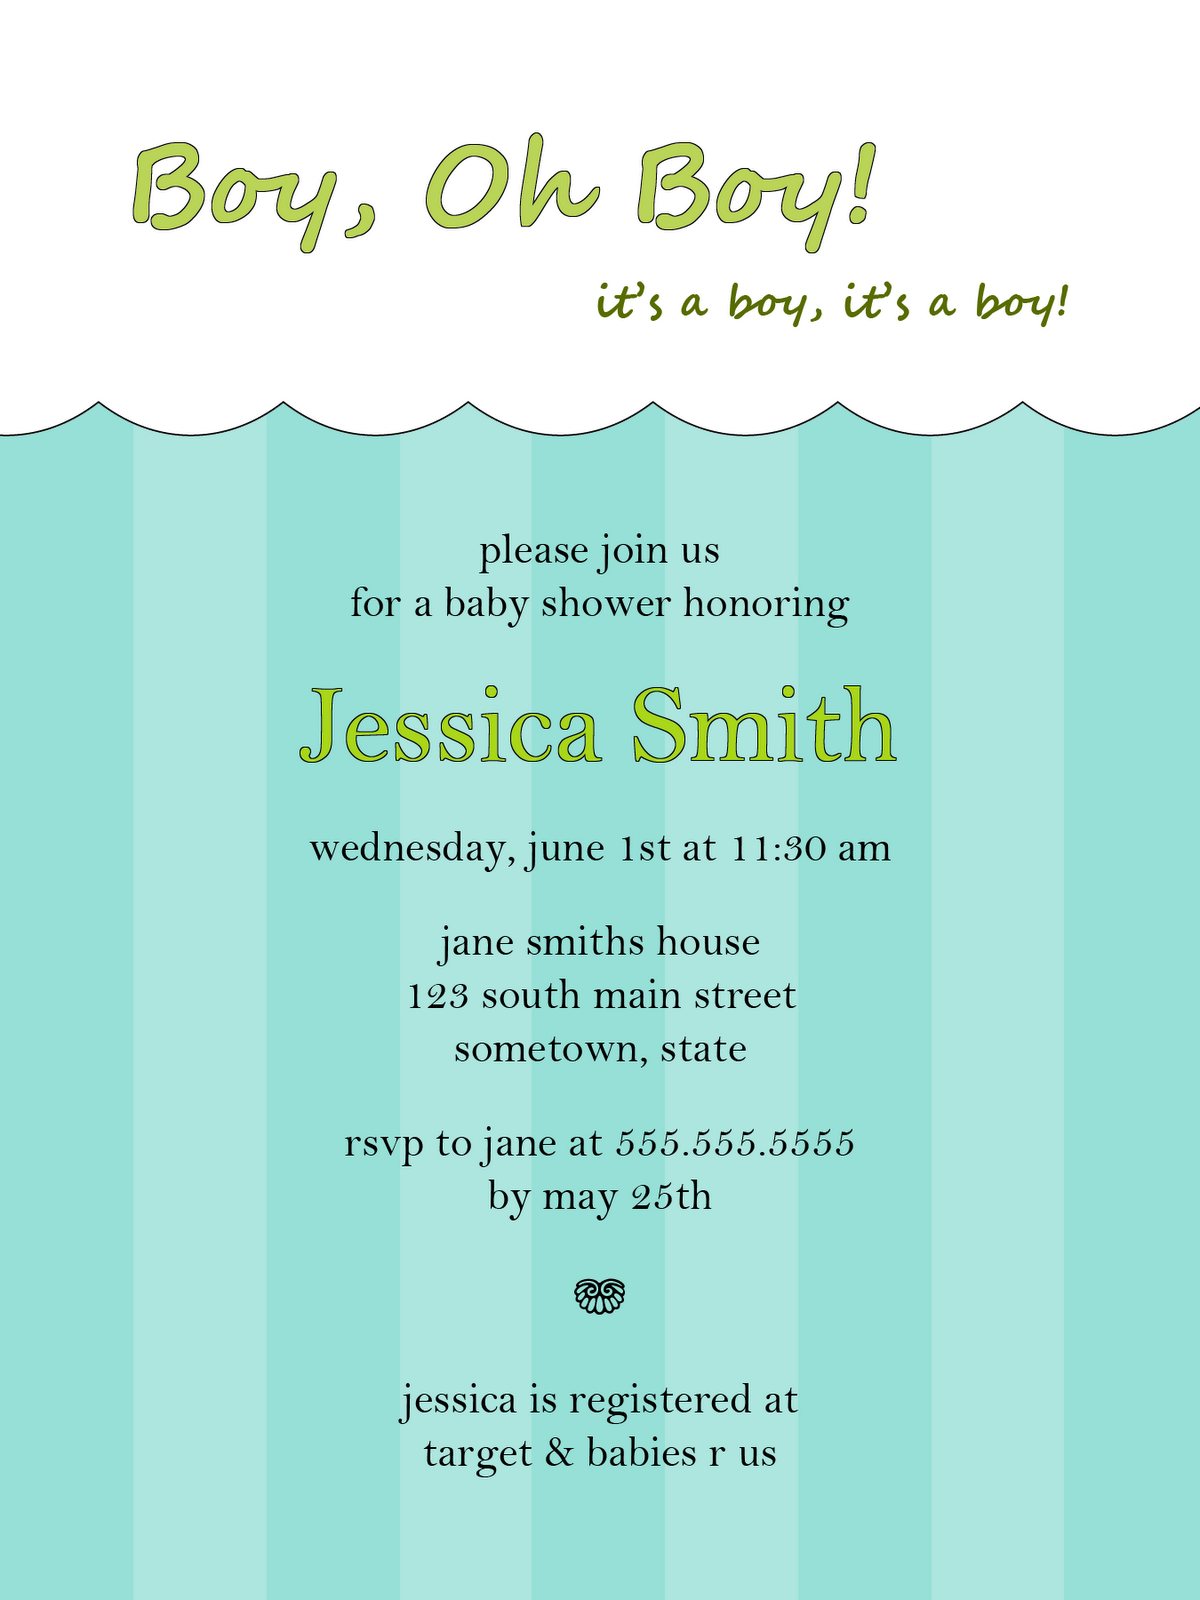 Loving Life Designs - Free Graphic Designs and Printables: Baby Boy ...